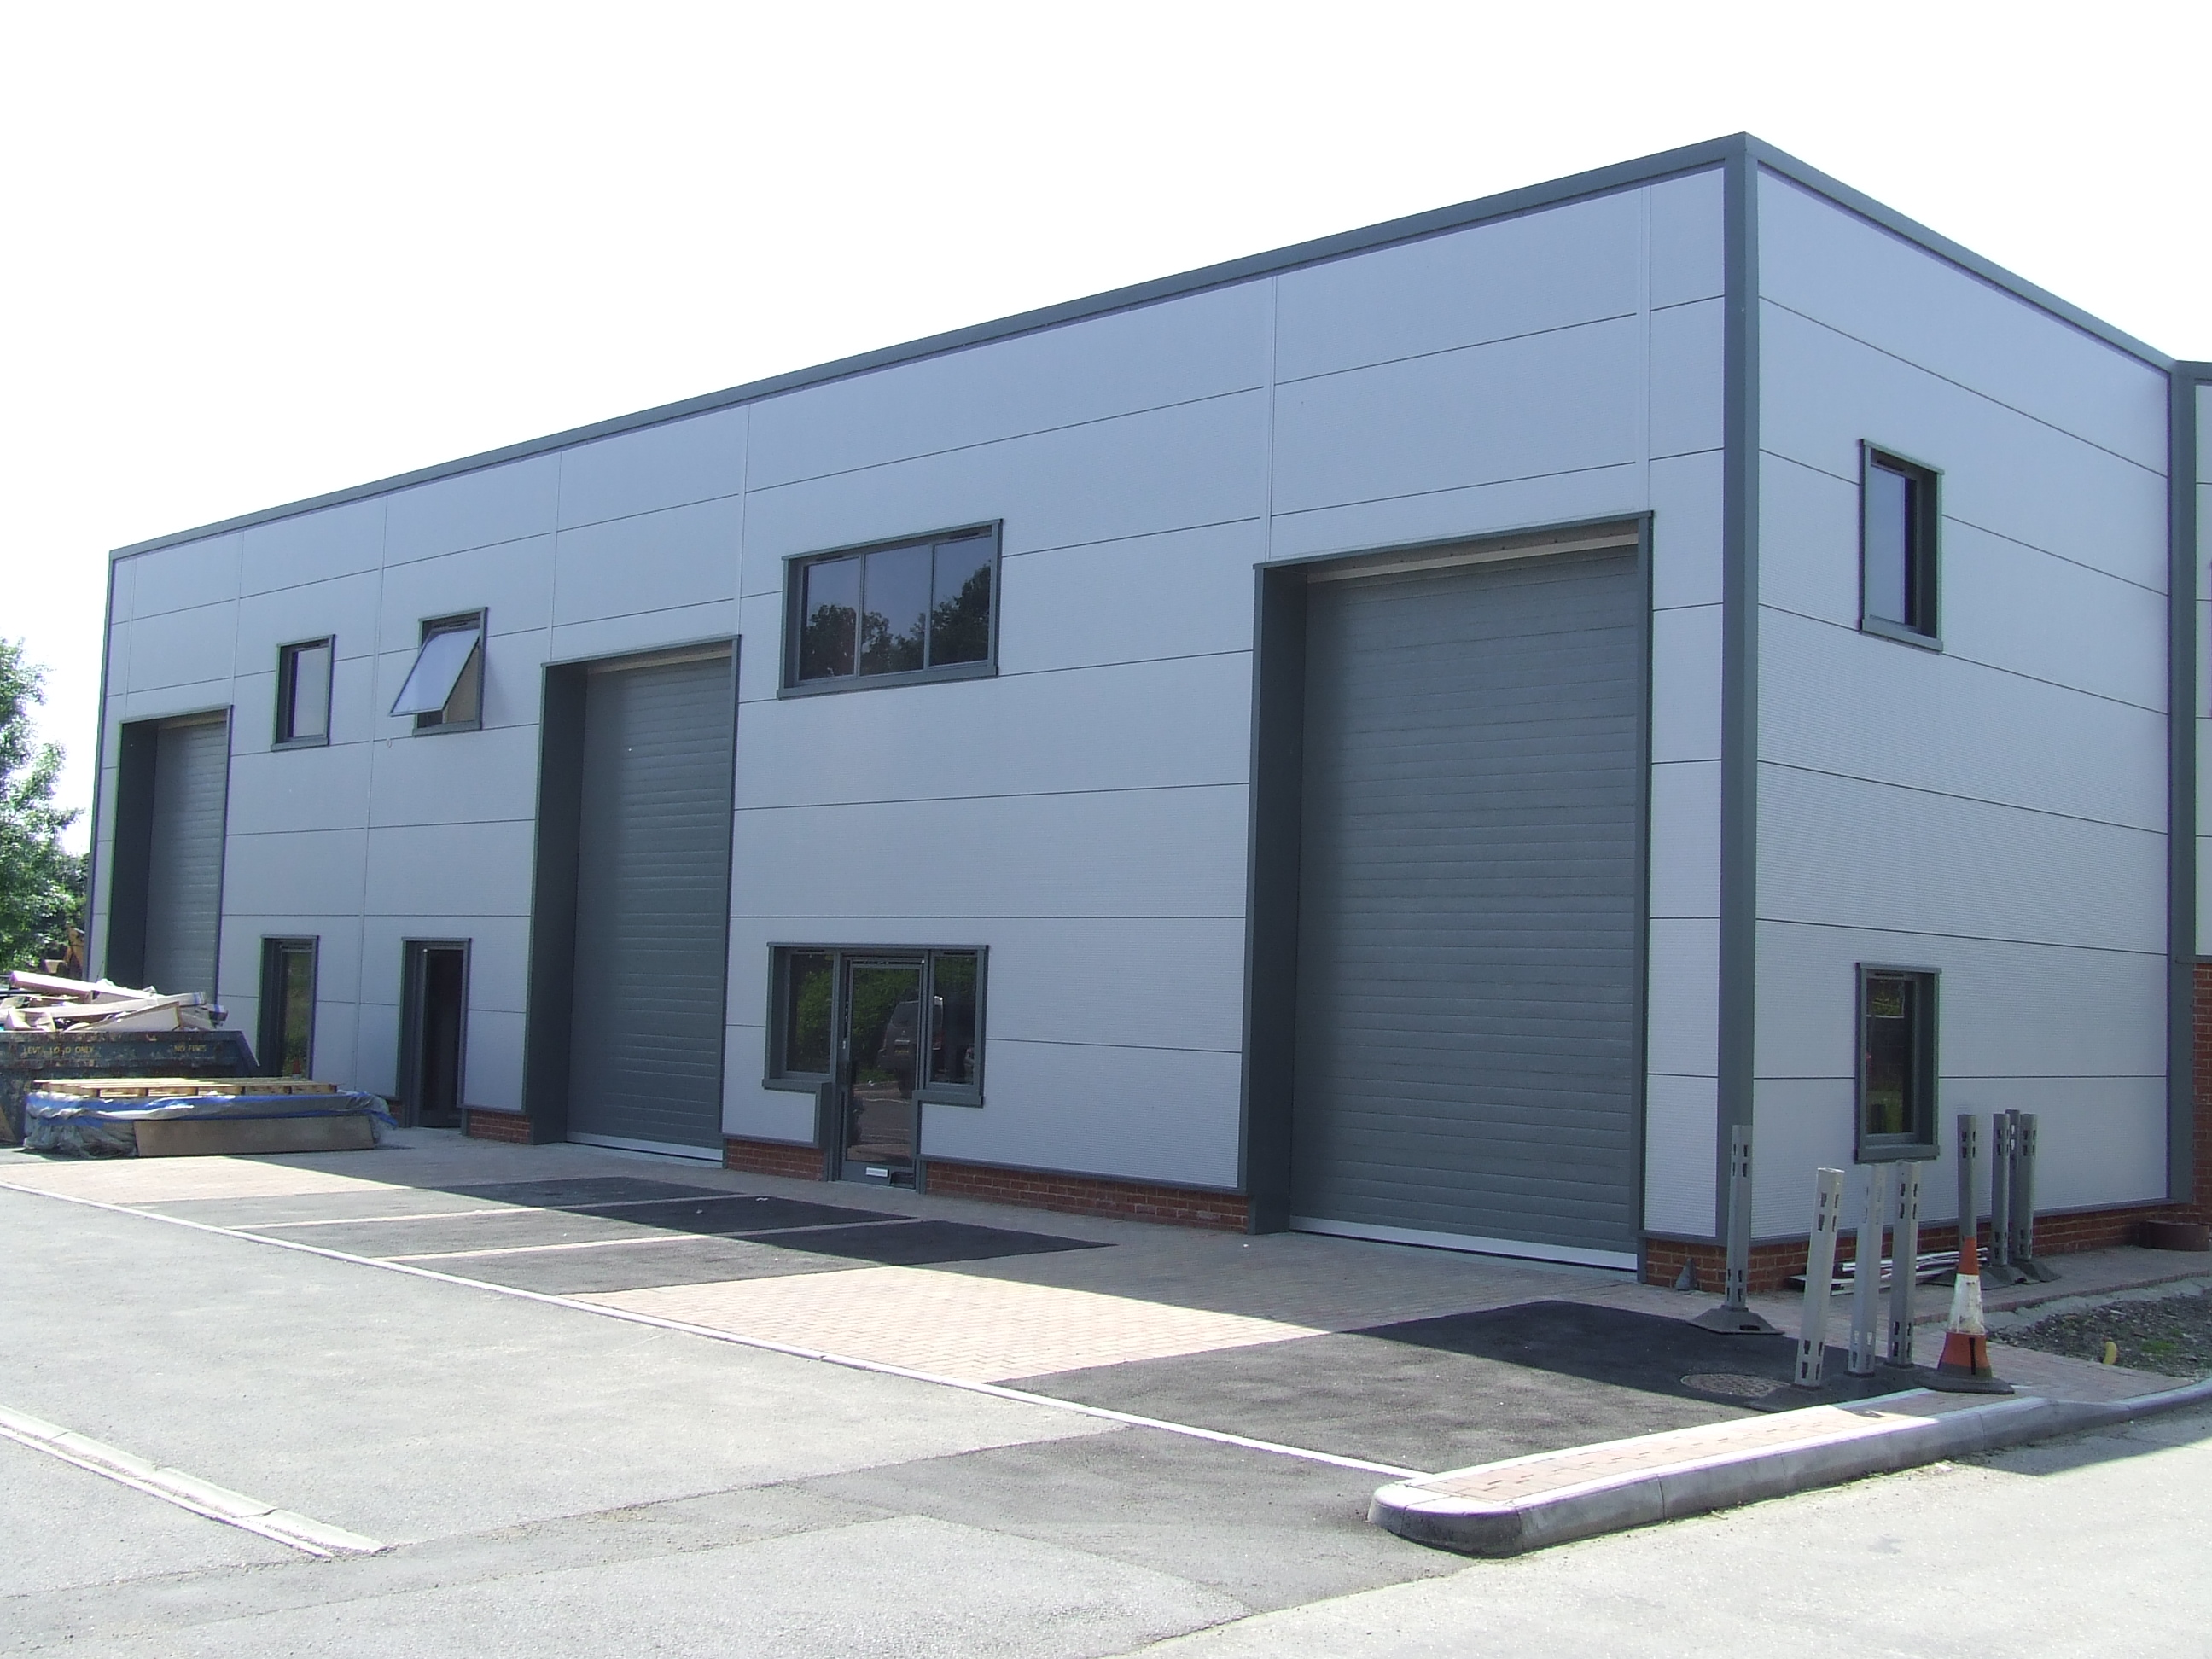 UNIT 2 WILLIAMS COURT, Littlemead Industrial Estate, CRANLEIGH - SOLD